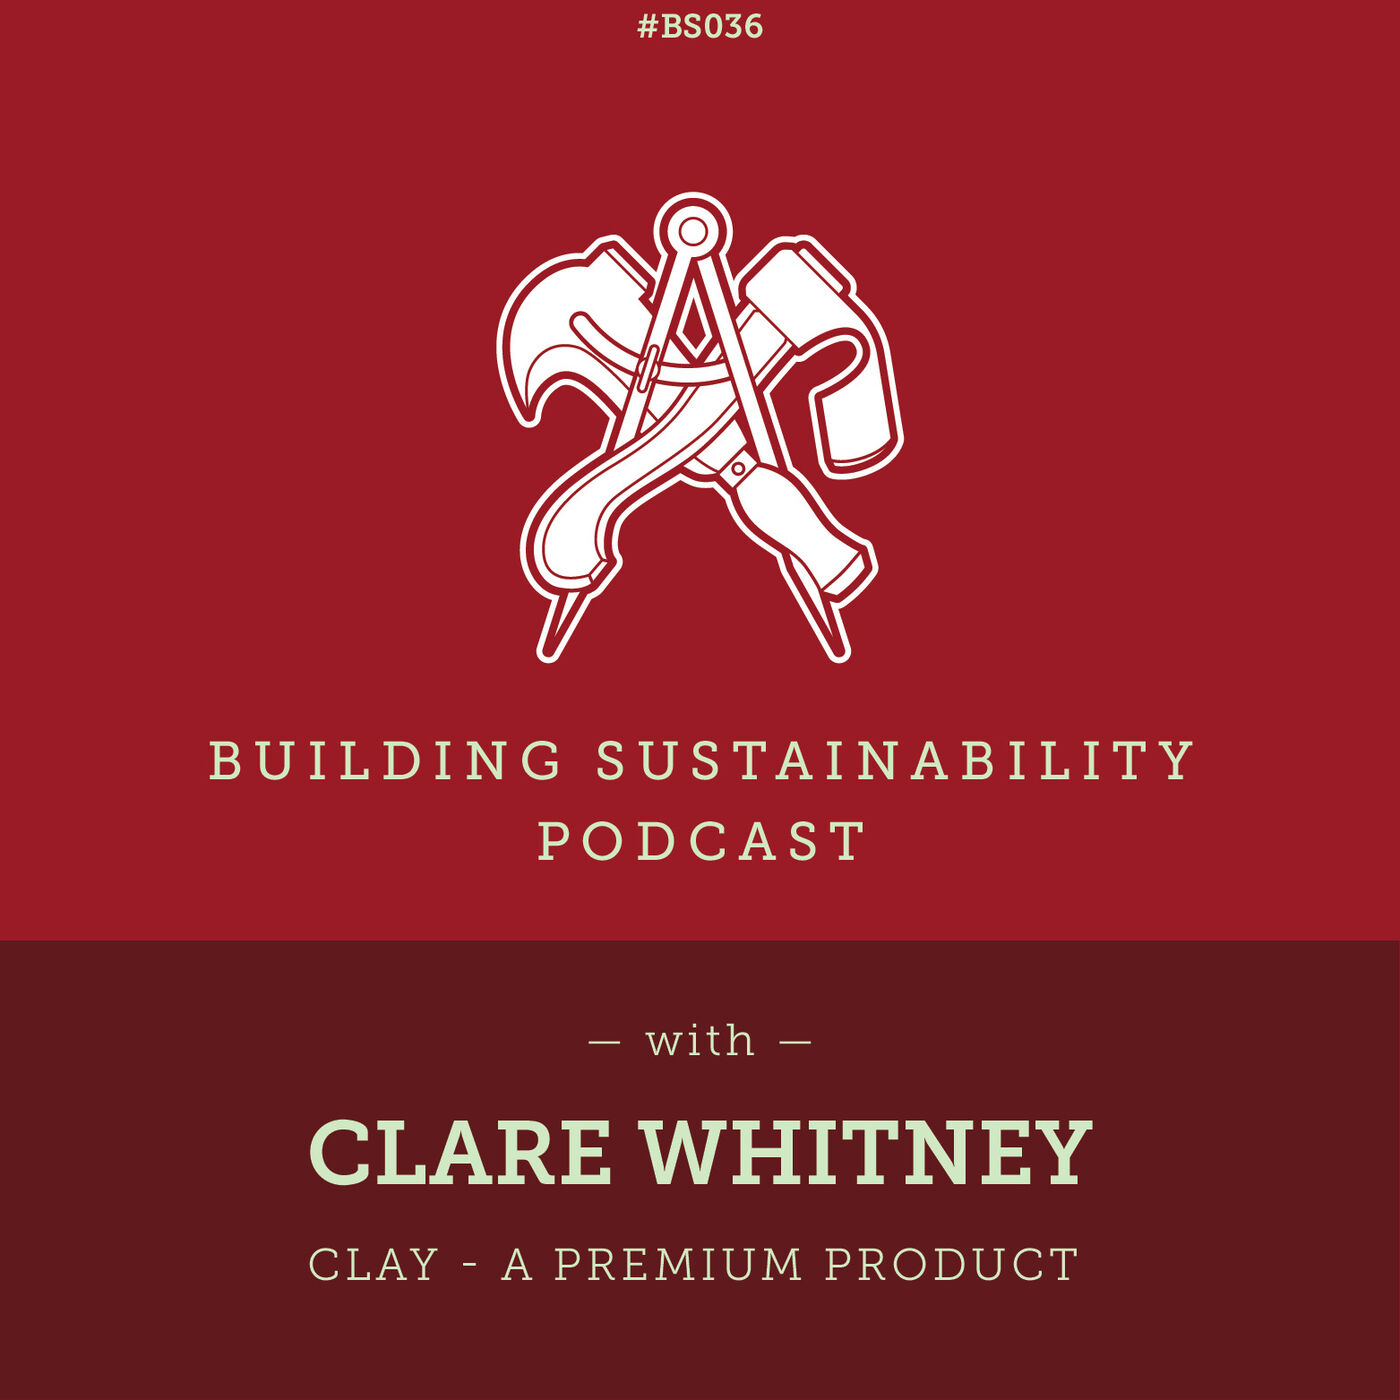 Clay - A Premium Product - Clare Whitney (Clayworks)